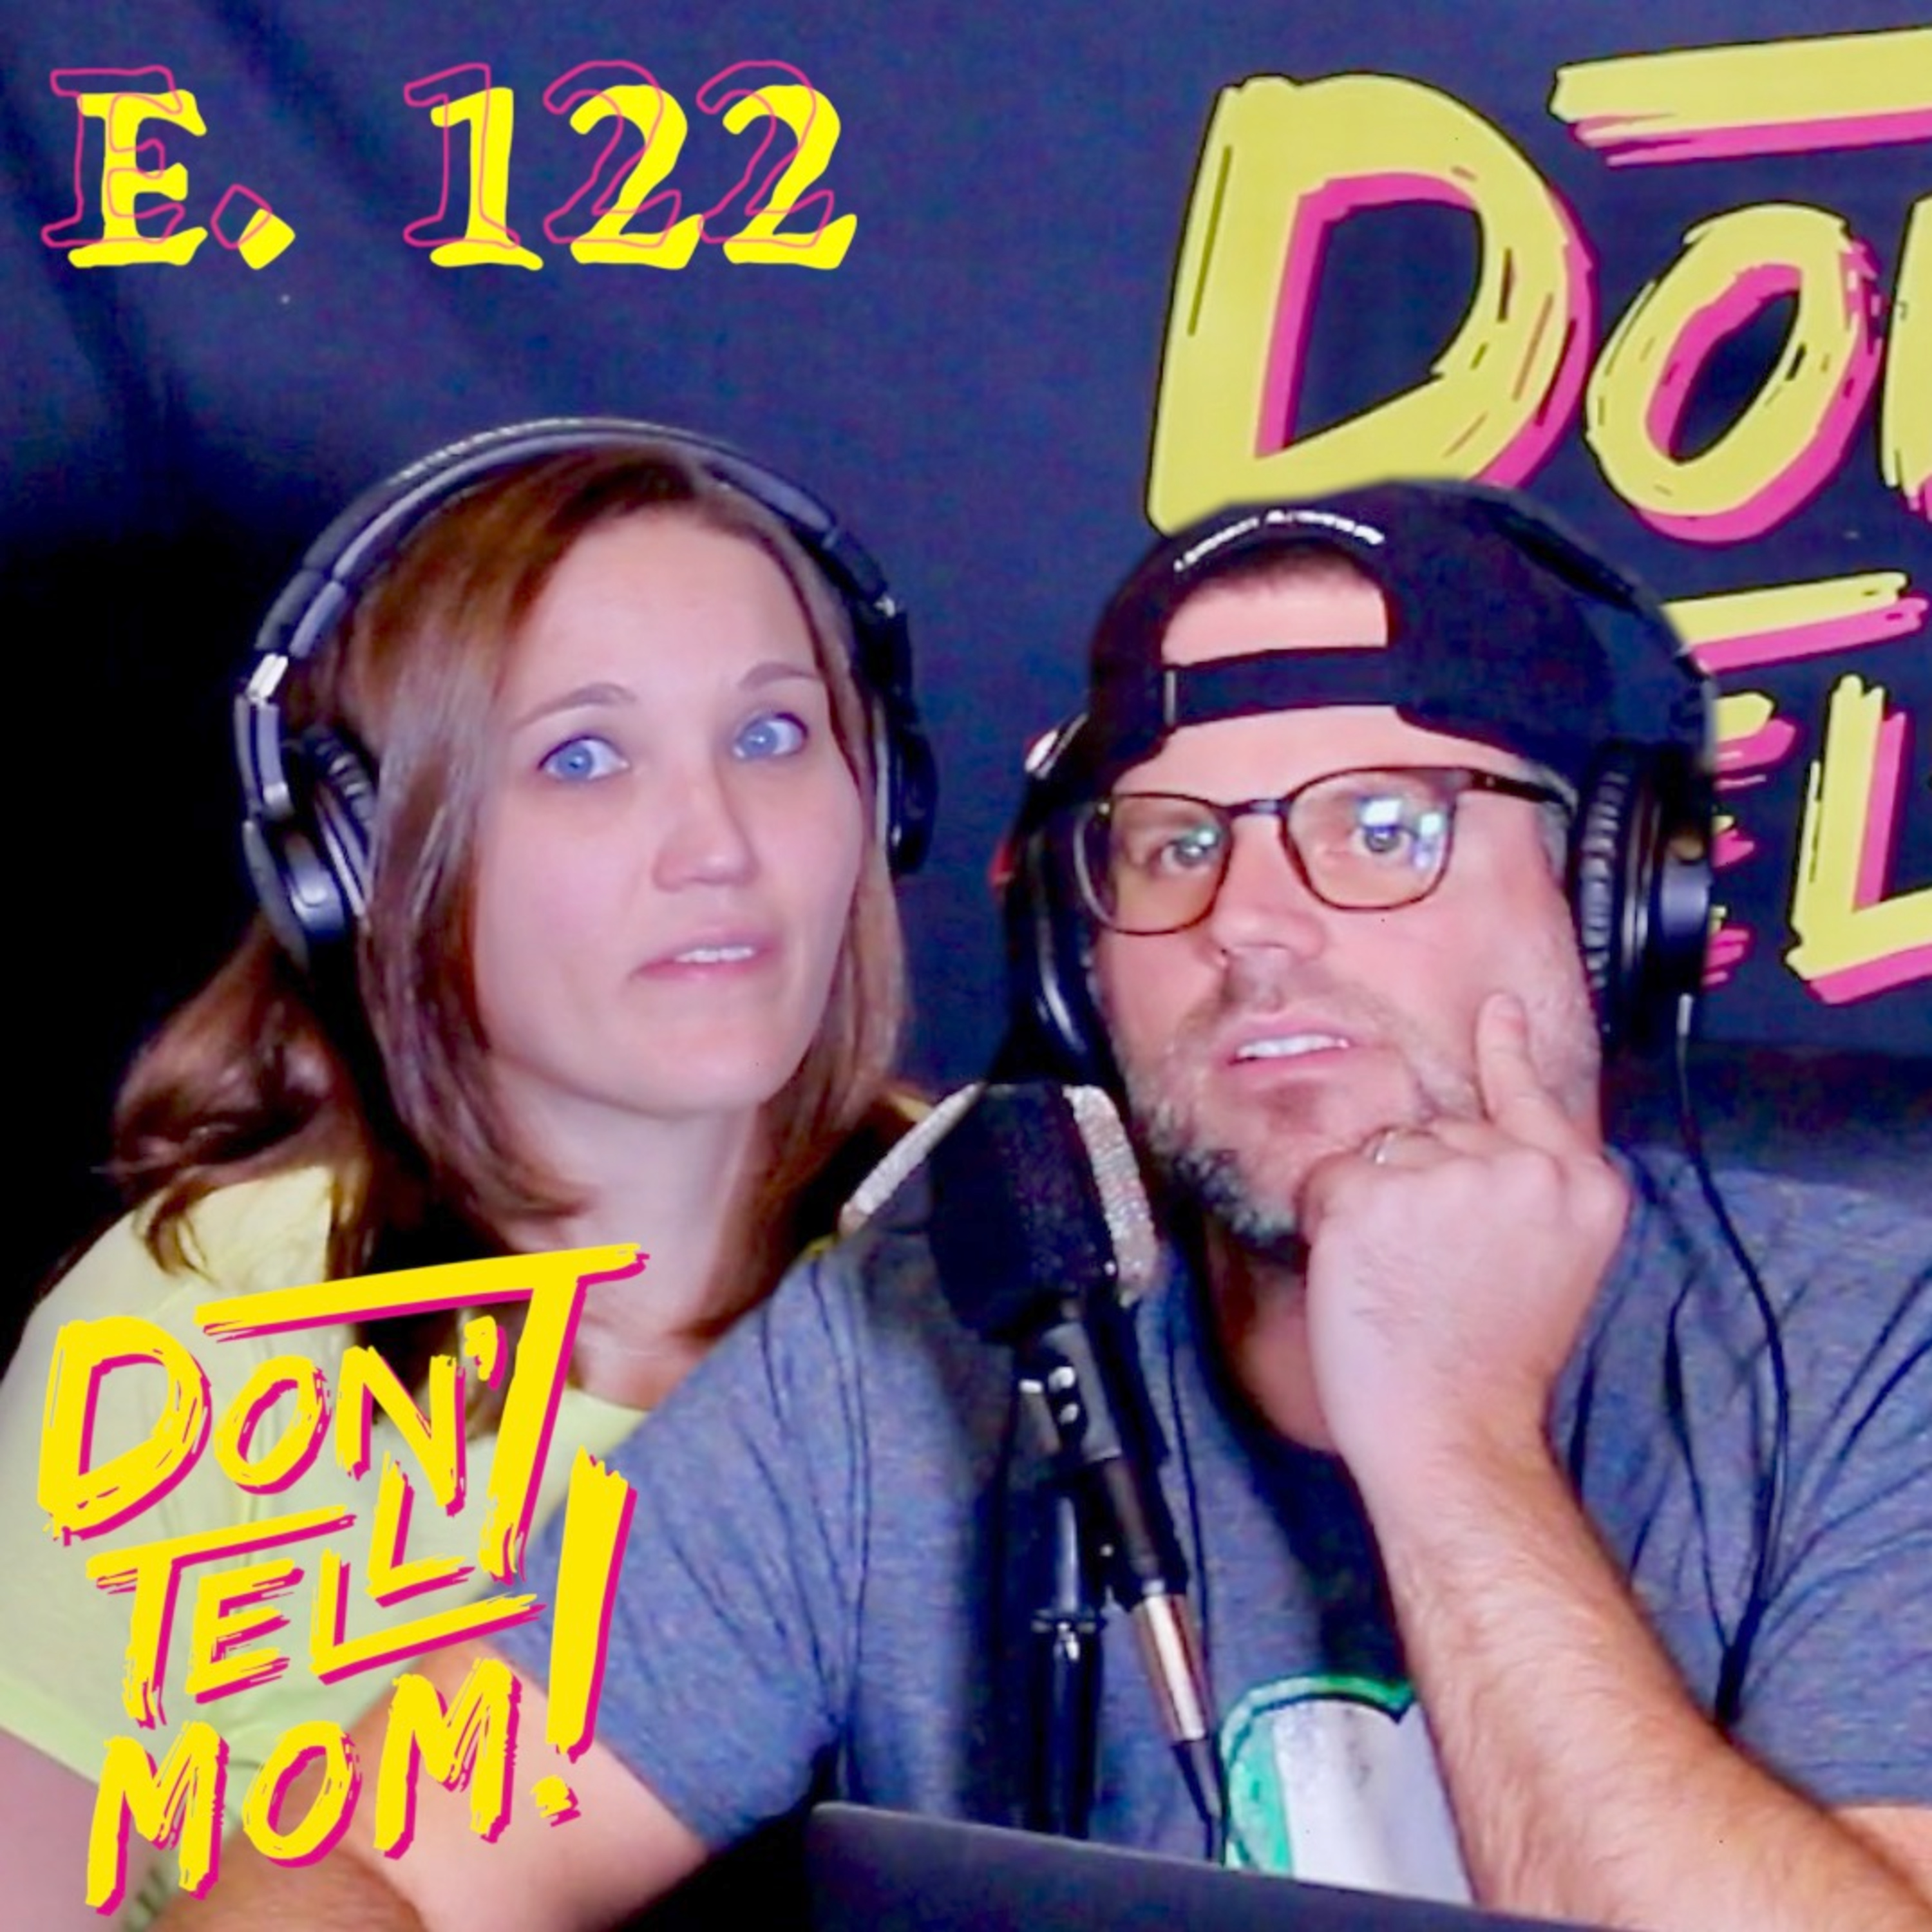 The End of DON'T TELL MOM PODCAST?! - Don't Tell Mom: e. 122